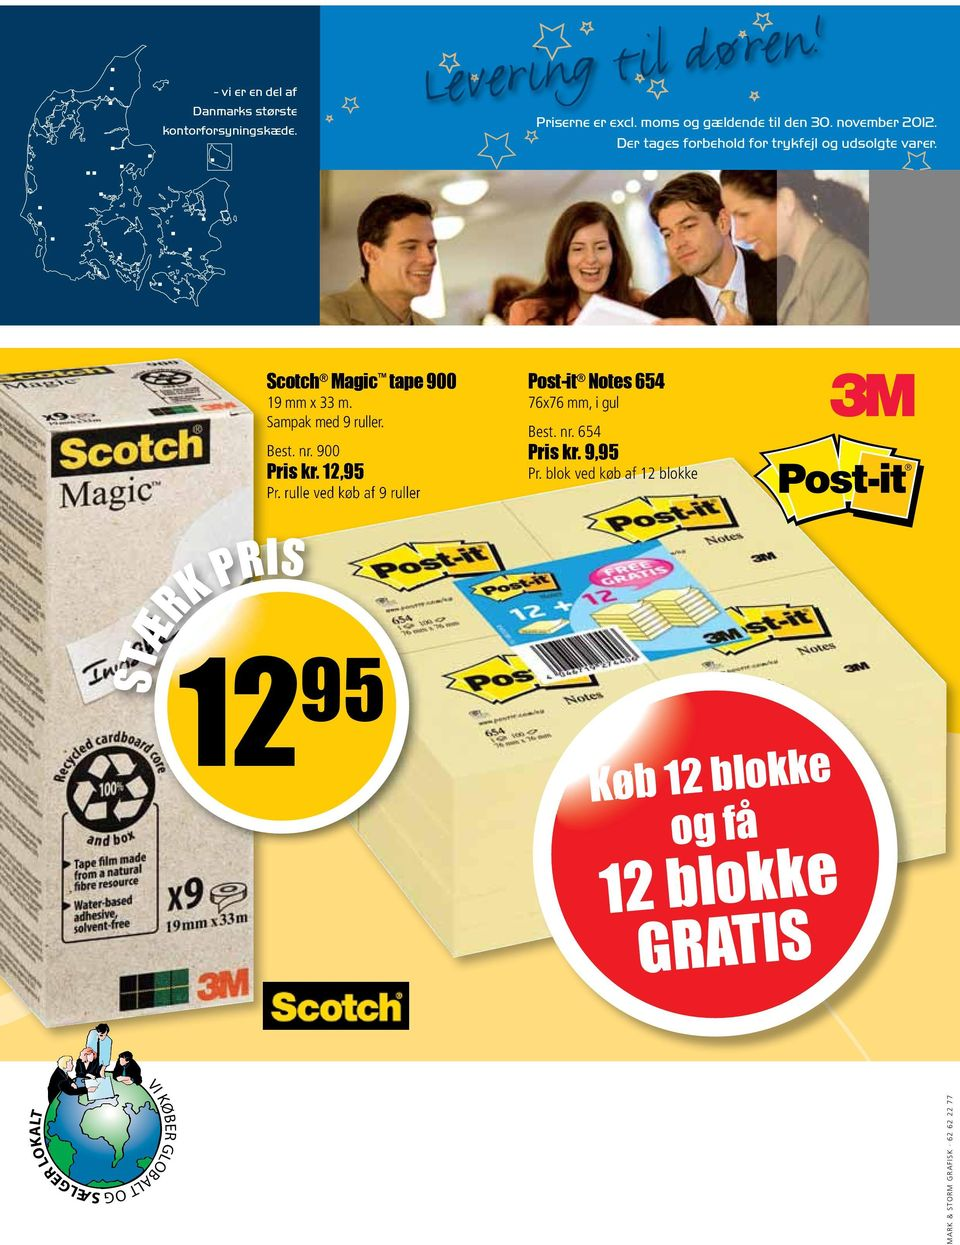 Scotch Magic tape 900 19 mm x 33 m. Sampak med 9 ruller. Best. nr. 900 Pris kr. 12,95 Pr.